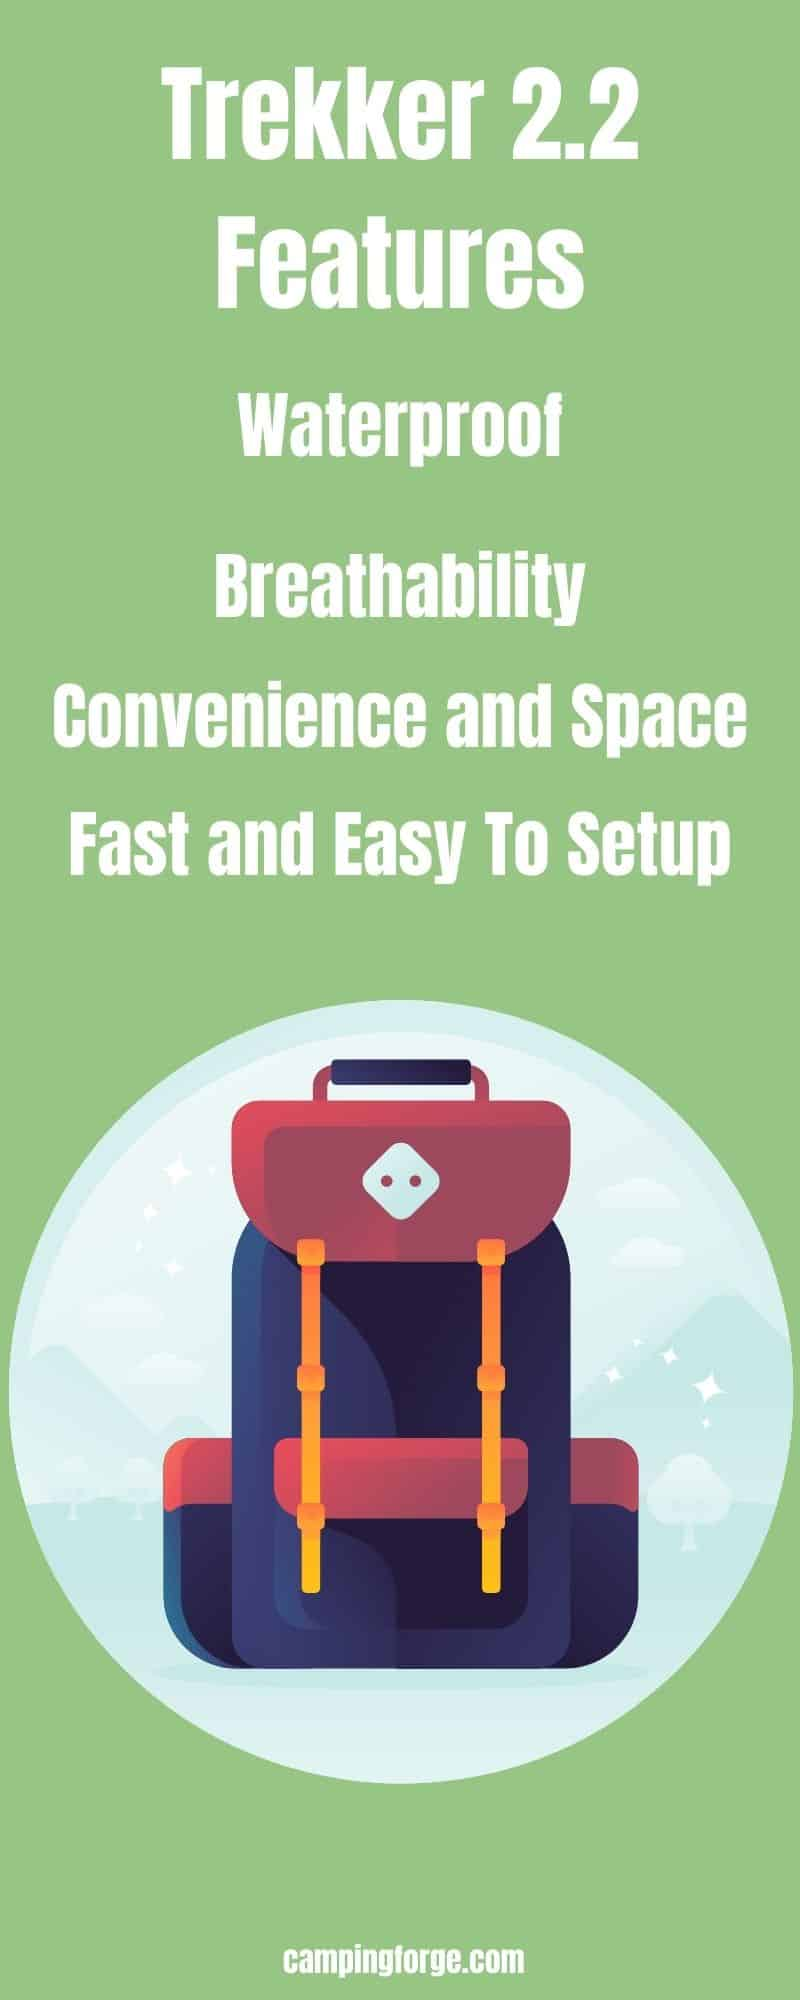 An infographic product features for the best backpacking tent for a tall person the Trekker 2.2